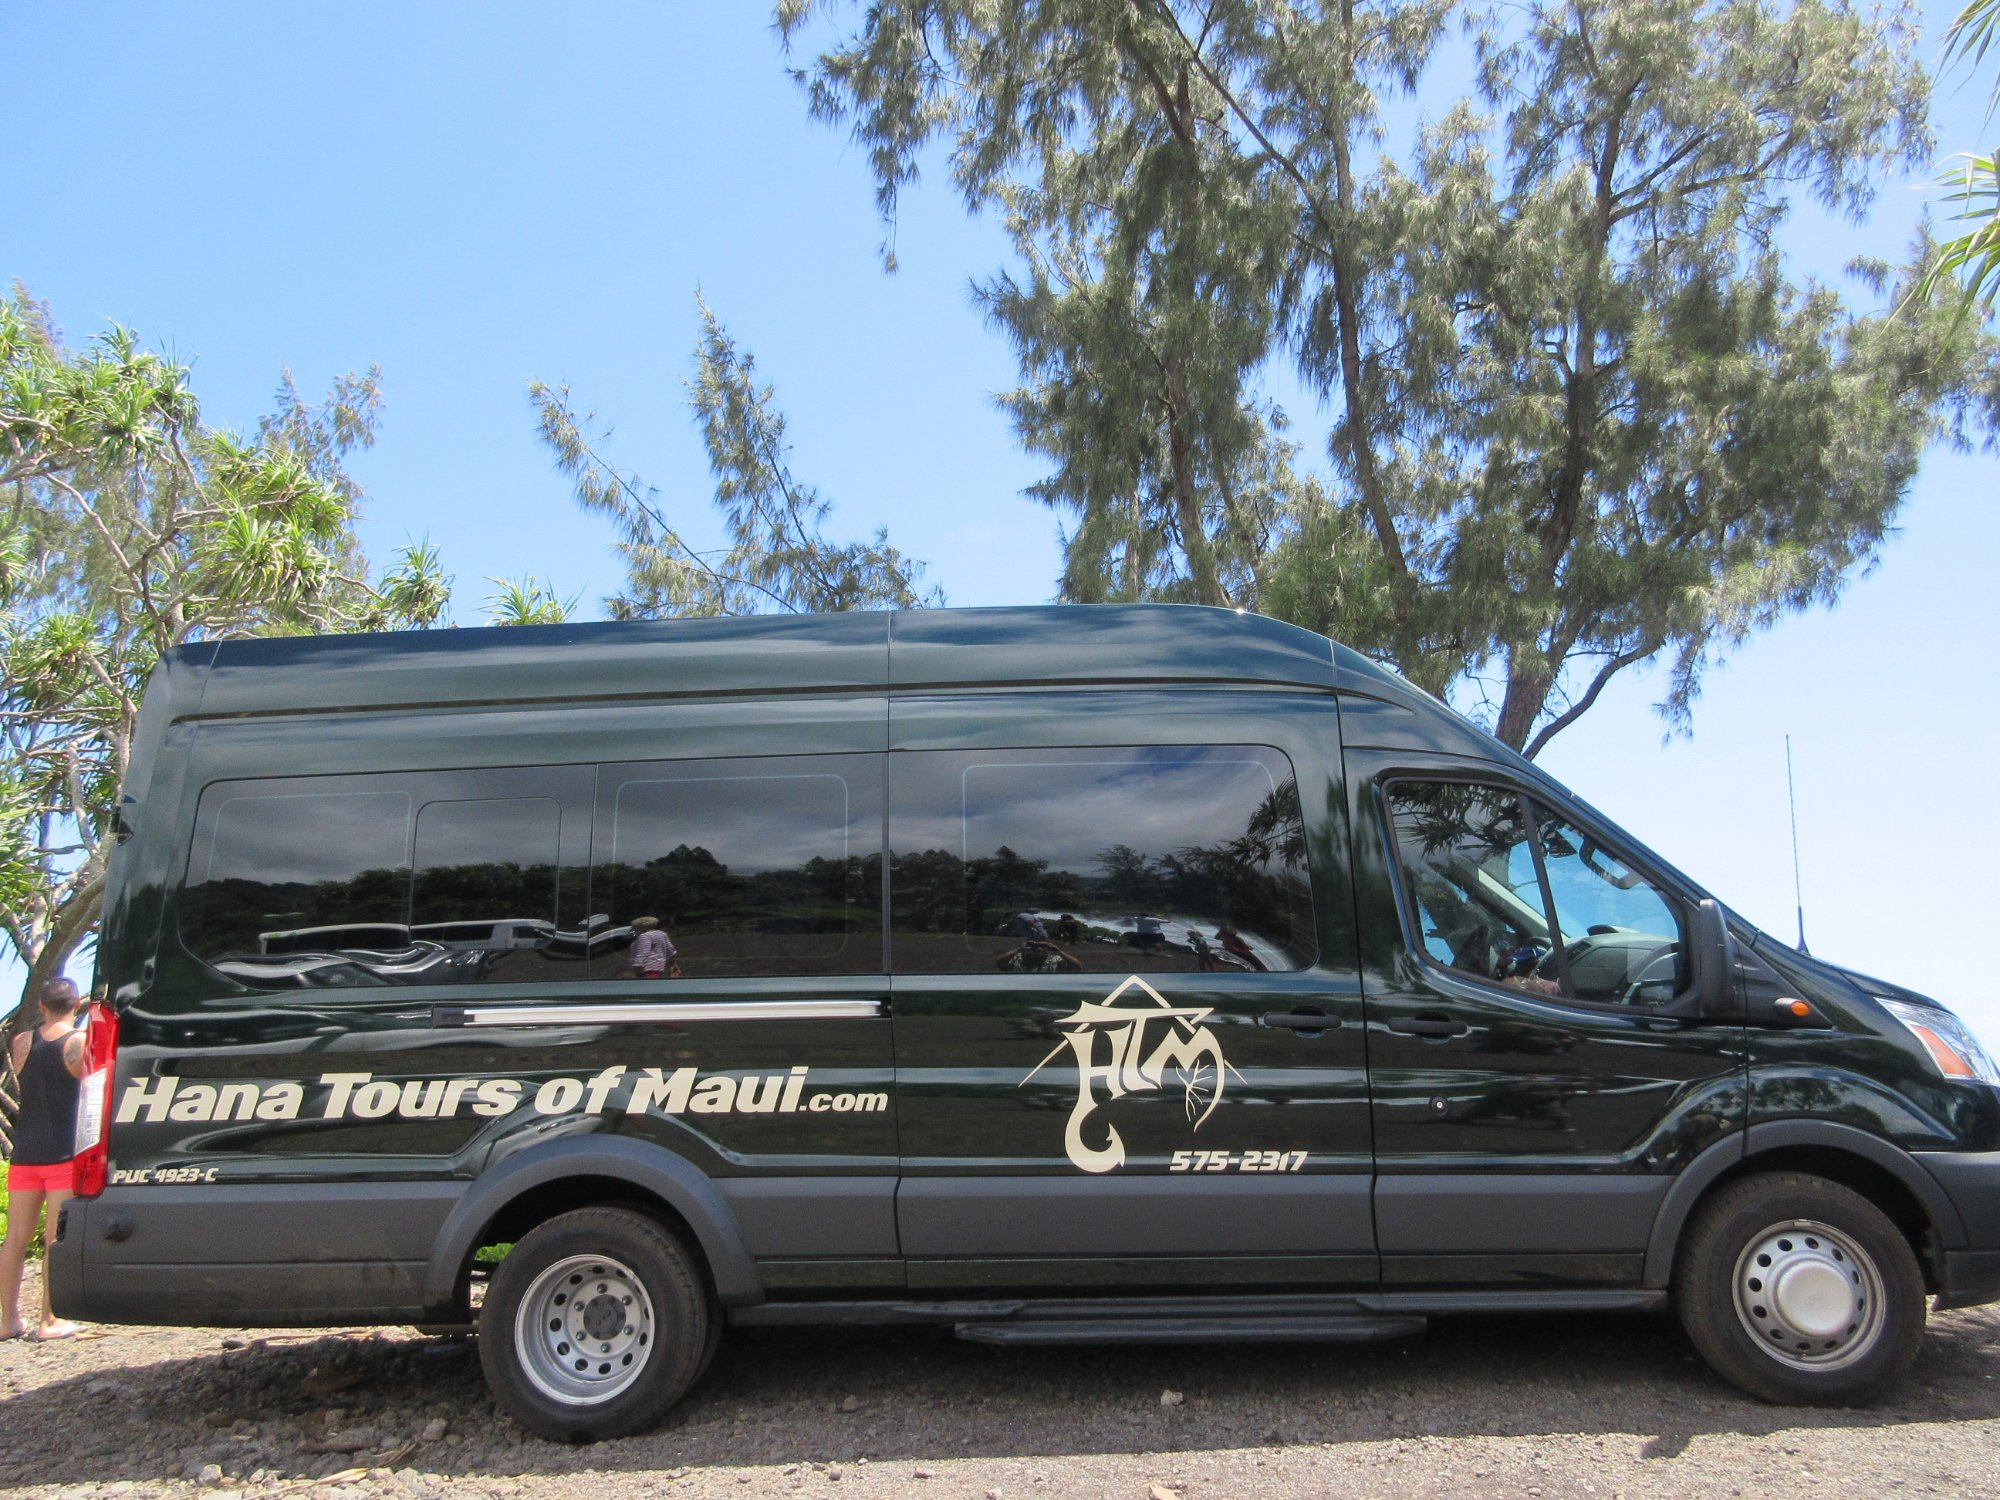 Air conditioned, customized, privacy glass on oversized windows and more on your tour to Hana, H